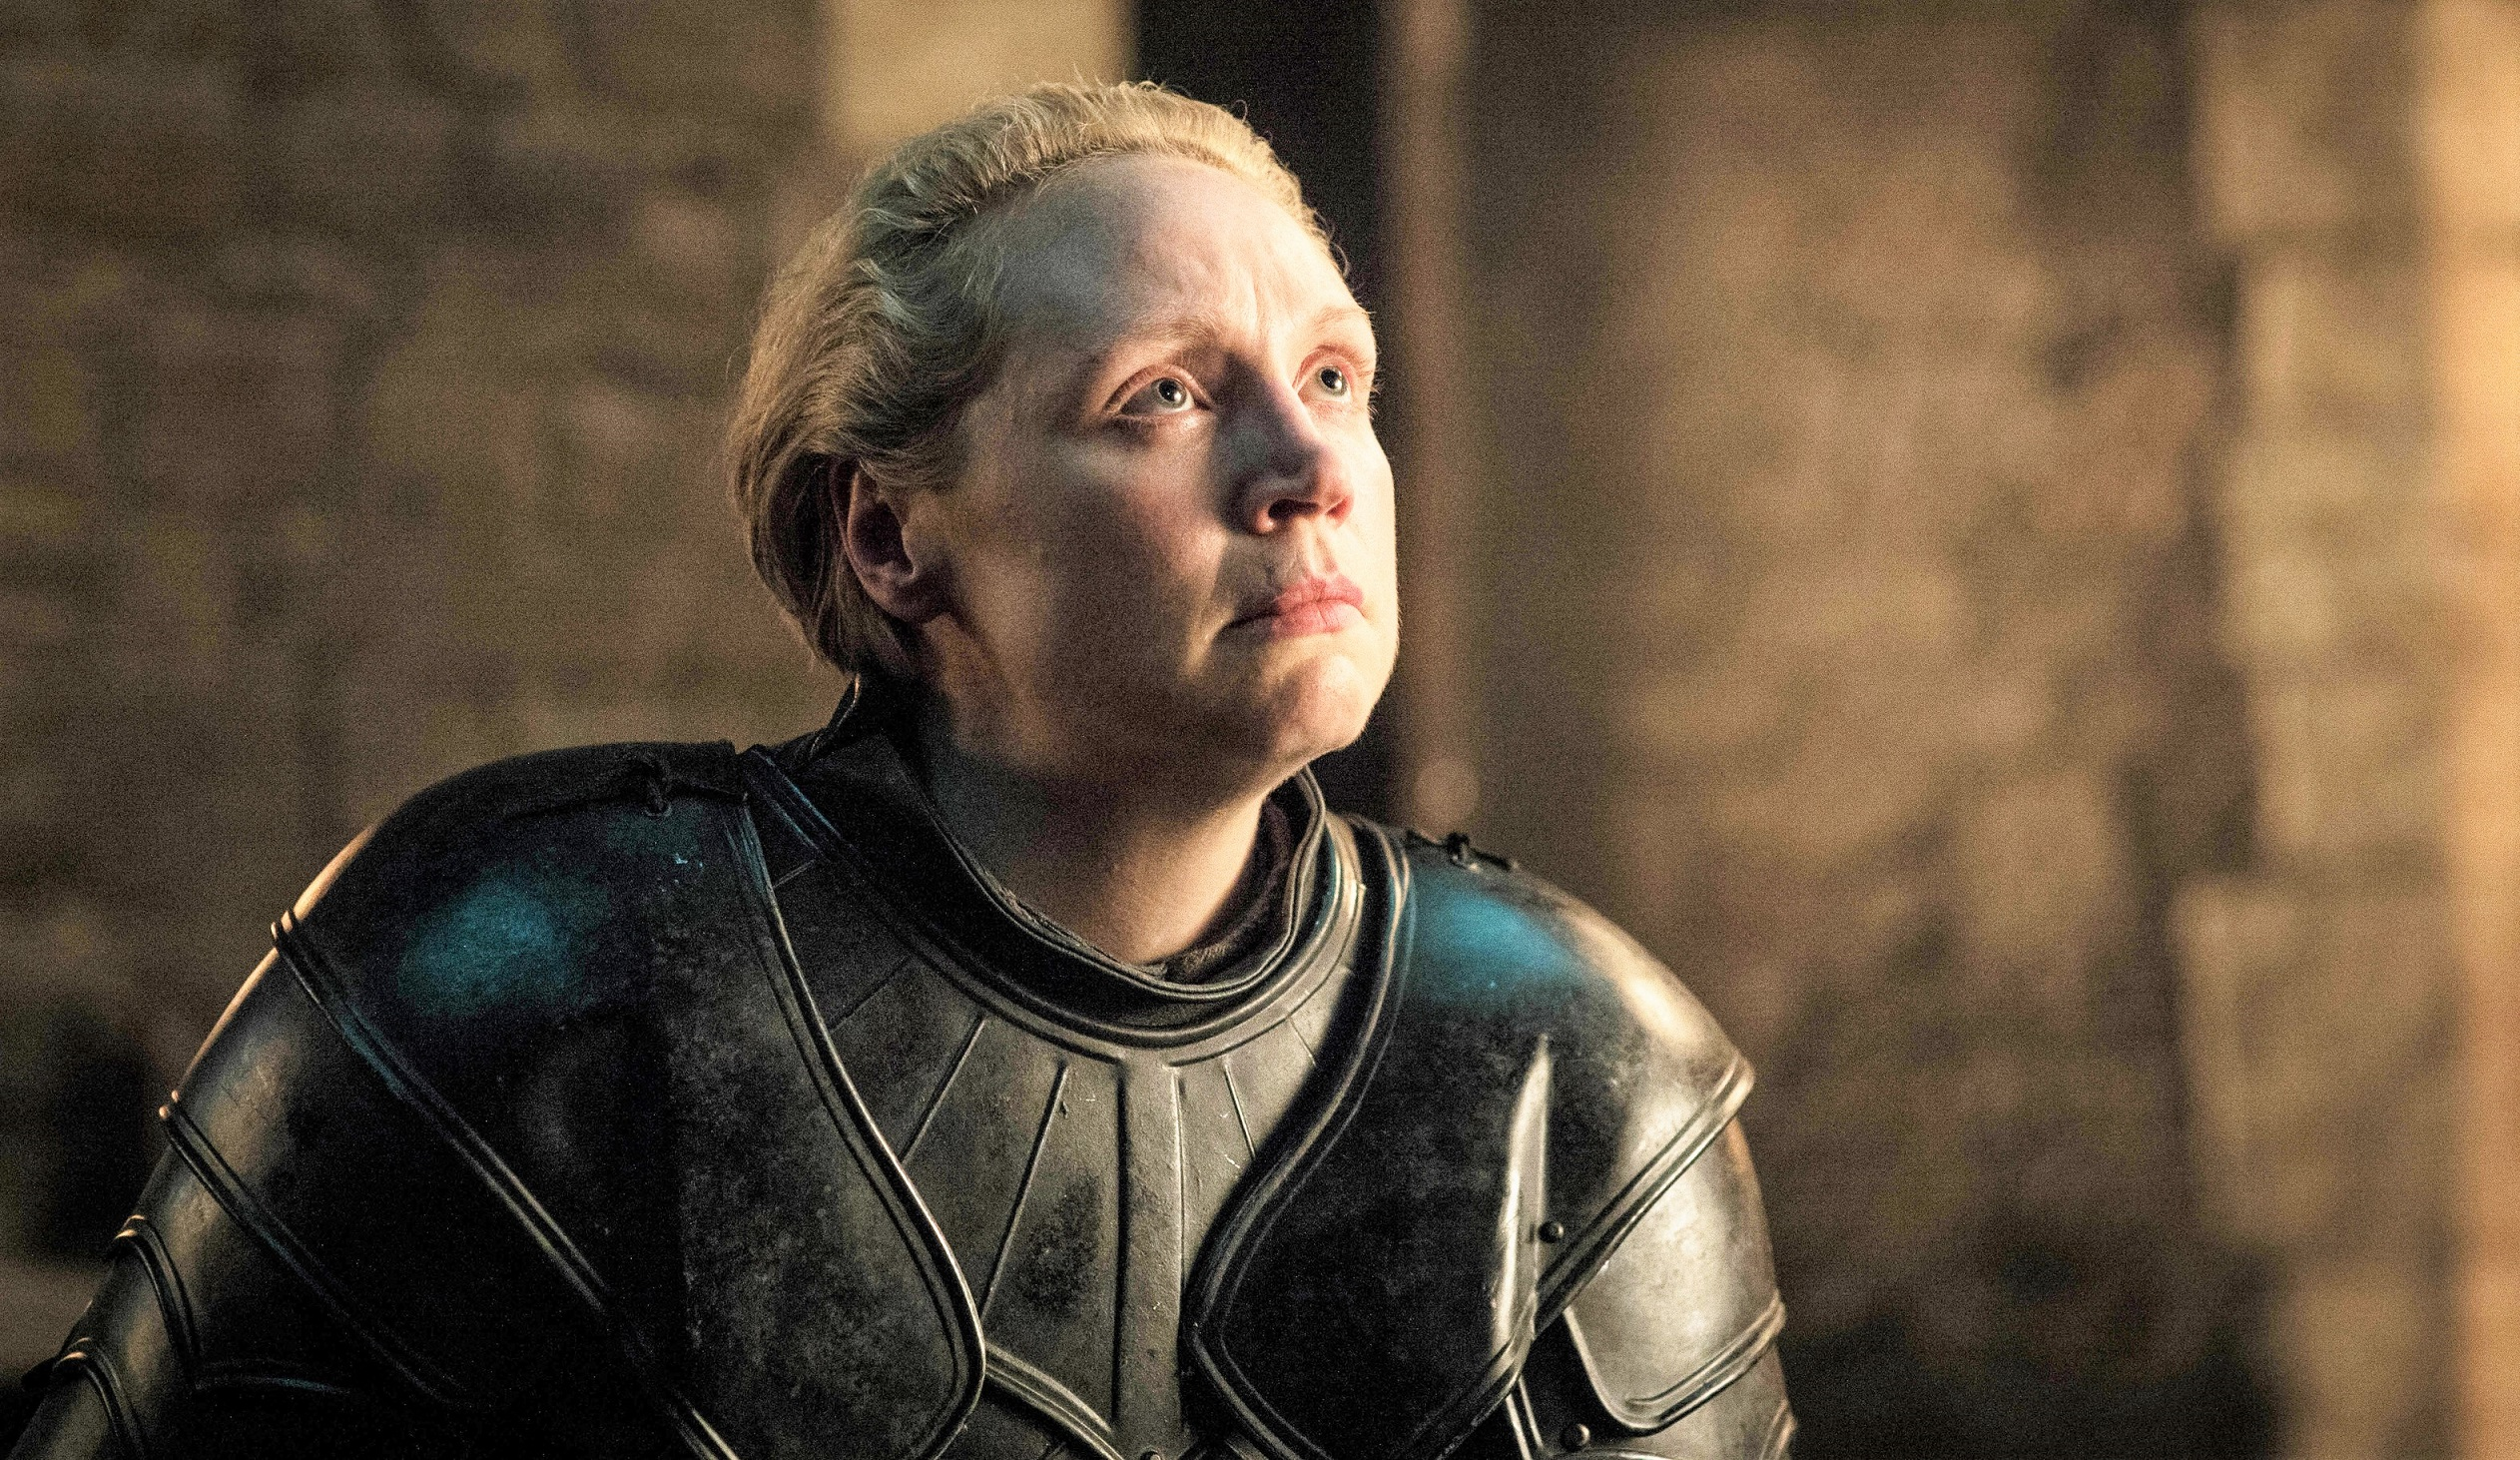 We could gaze at Brienne's expression here forever.